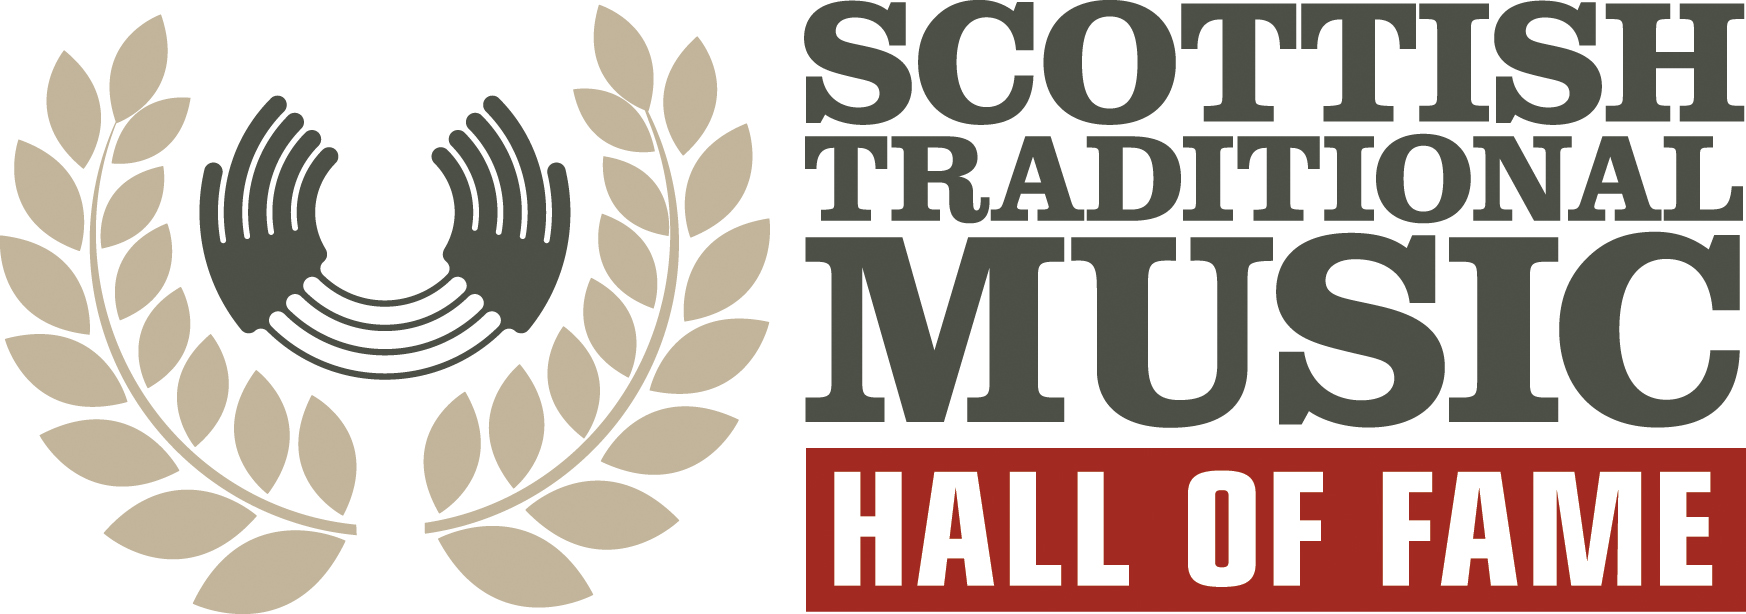 https://projects.handsupfortrad.scot/handsupfortrad/files/2014/01/HOF_logo_2.jpg